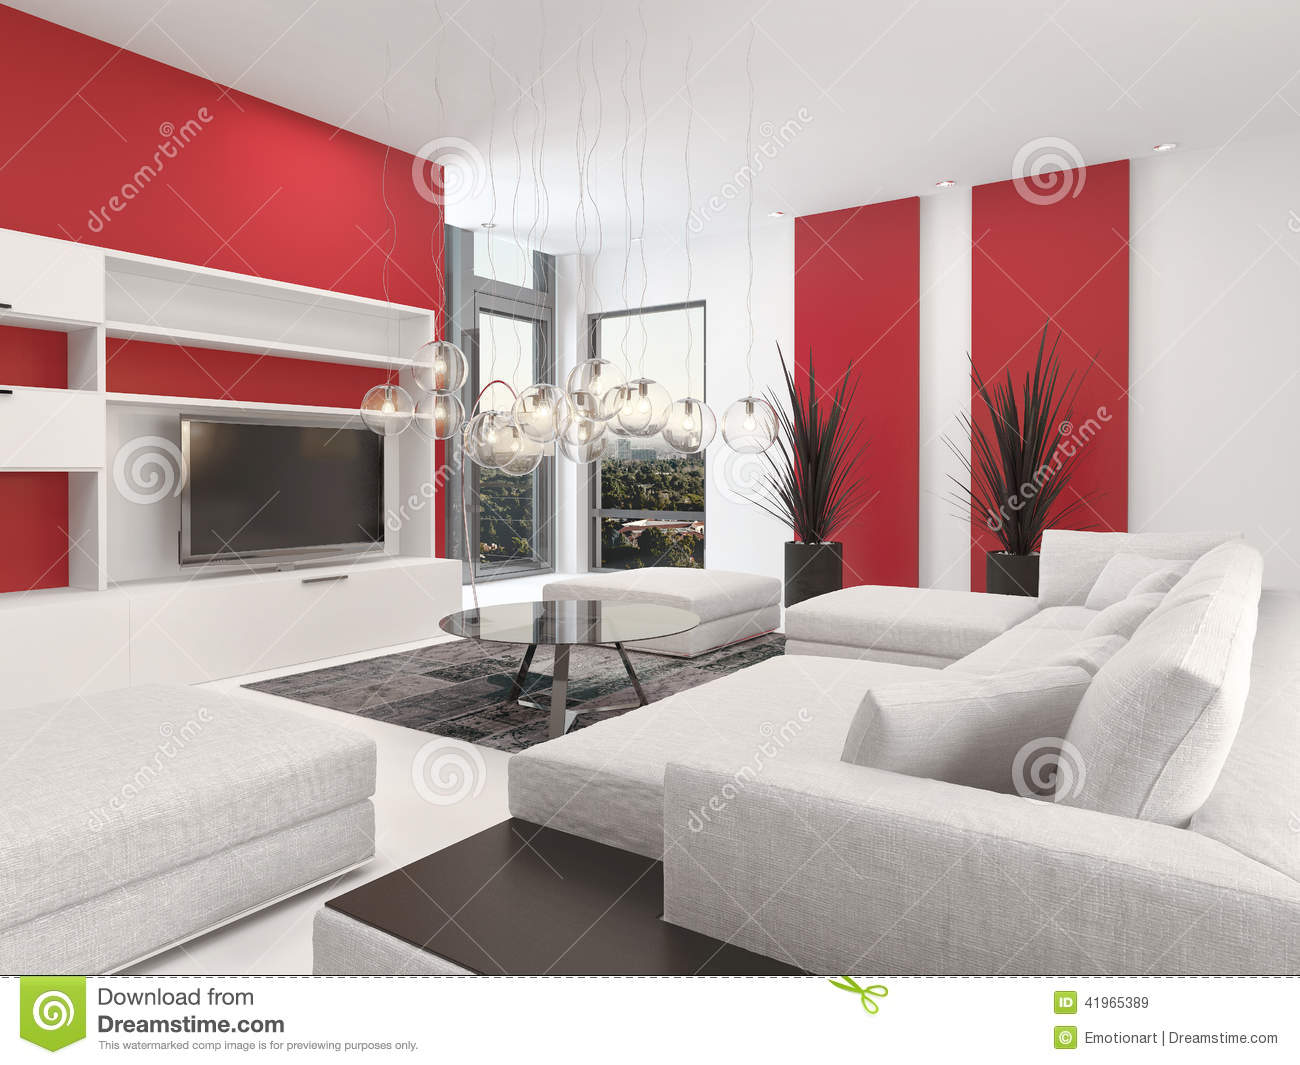 Contemporary living room interior with red accents stock for Red modern decor